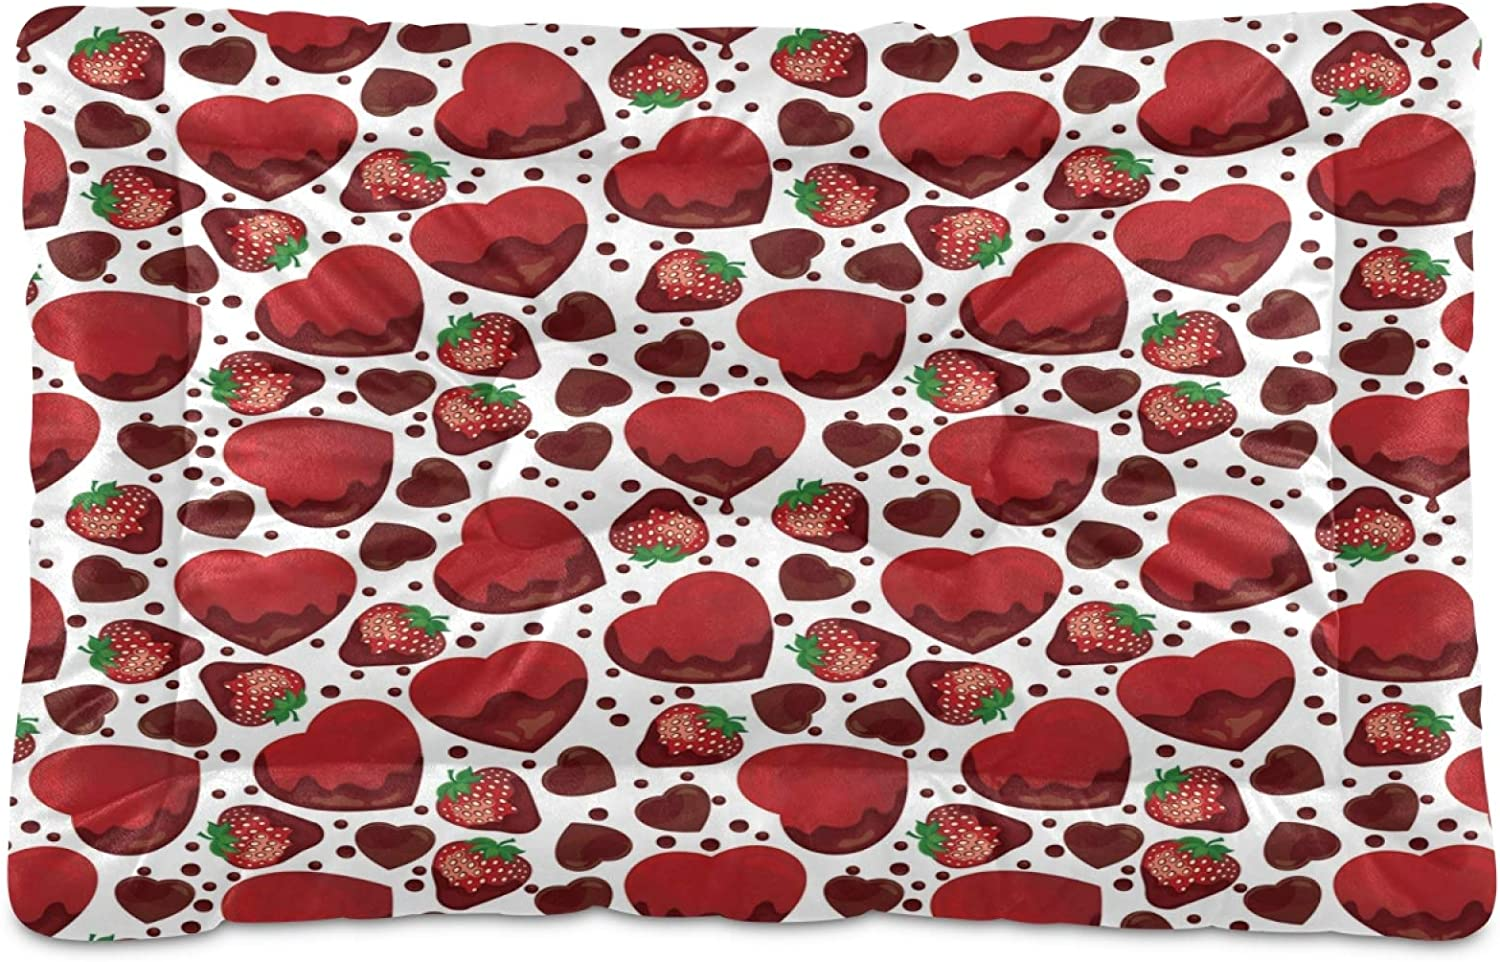 Nander Finally resale start Red Strawberry Heart Dots Pad Comfortable Beds Crate Popular products Dog